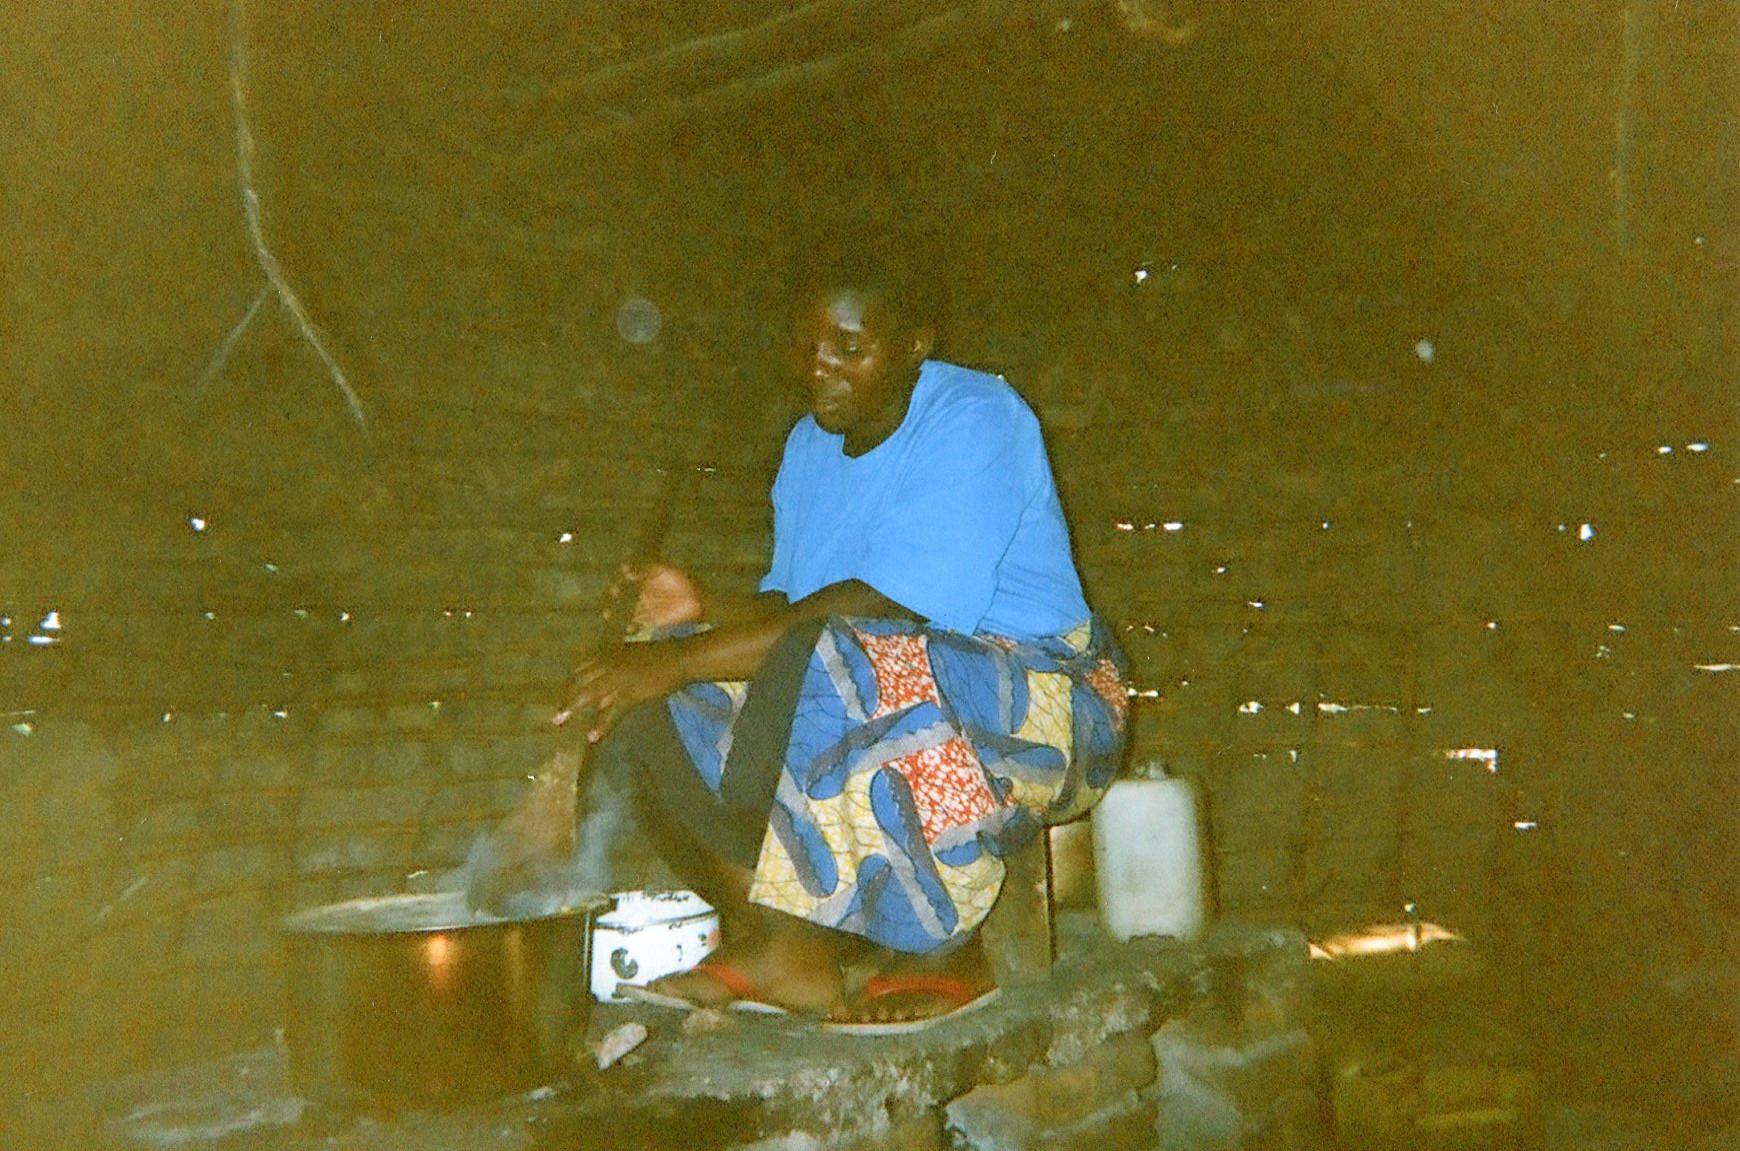 Here I am making fufu — they don't even give me a little bit and I go to bed hungry.